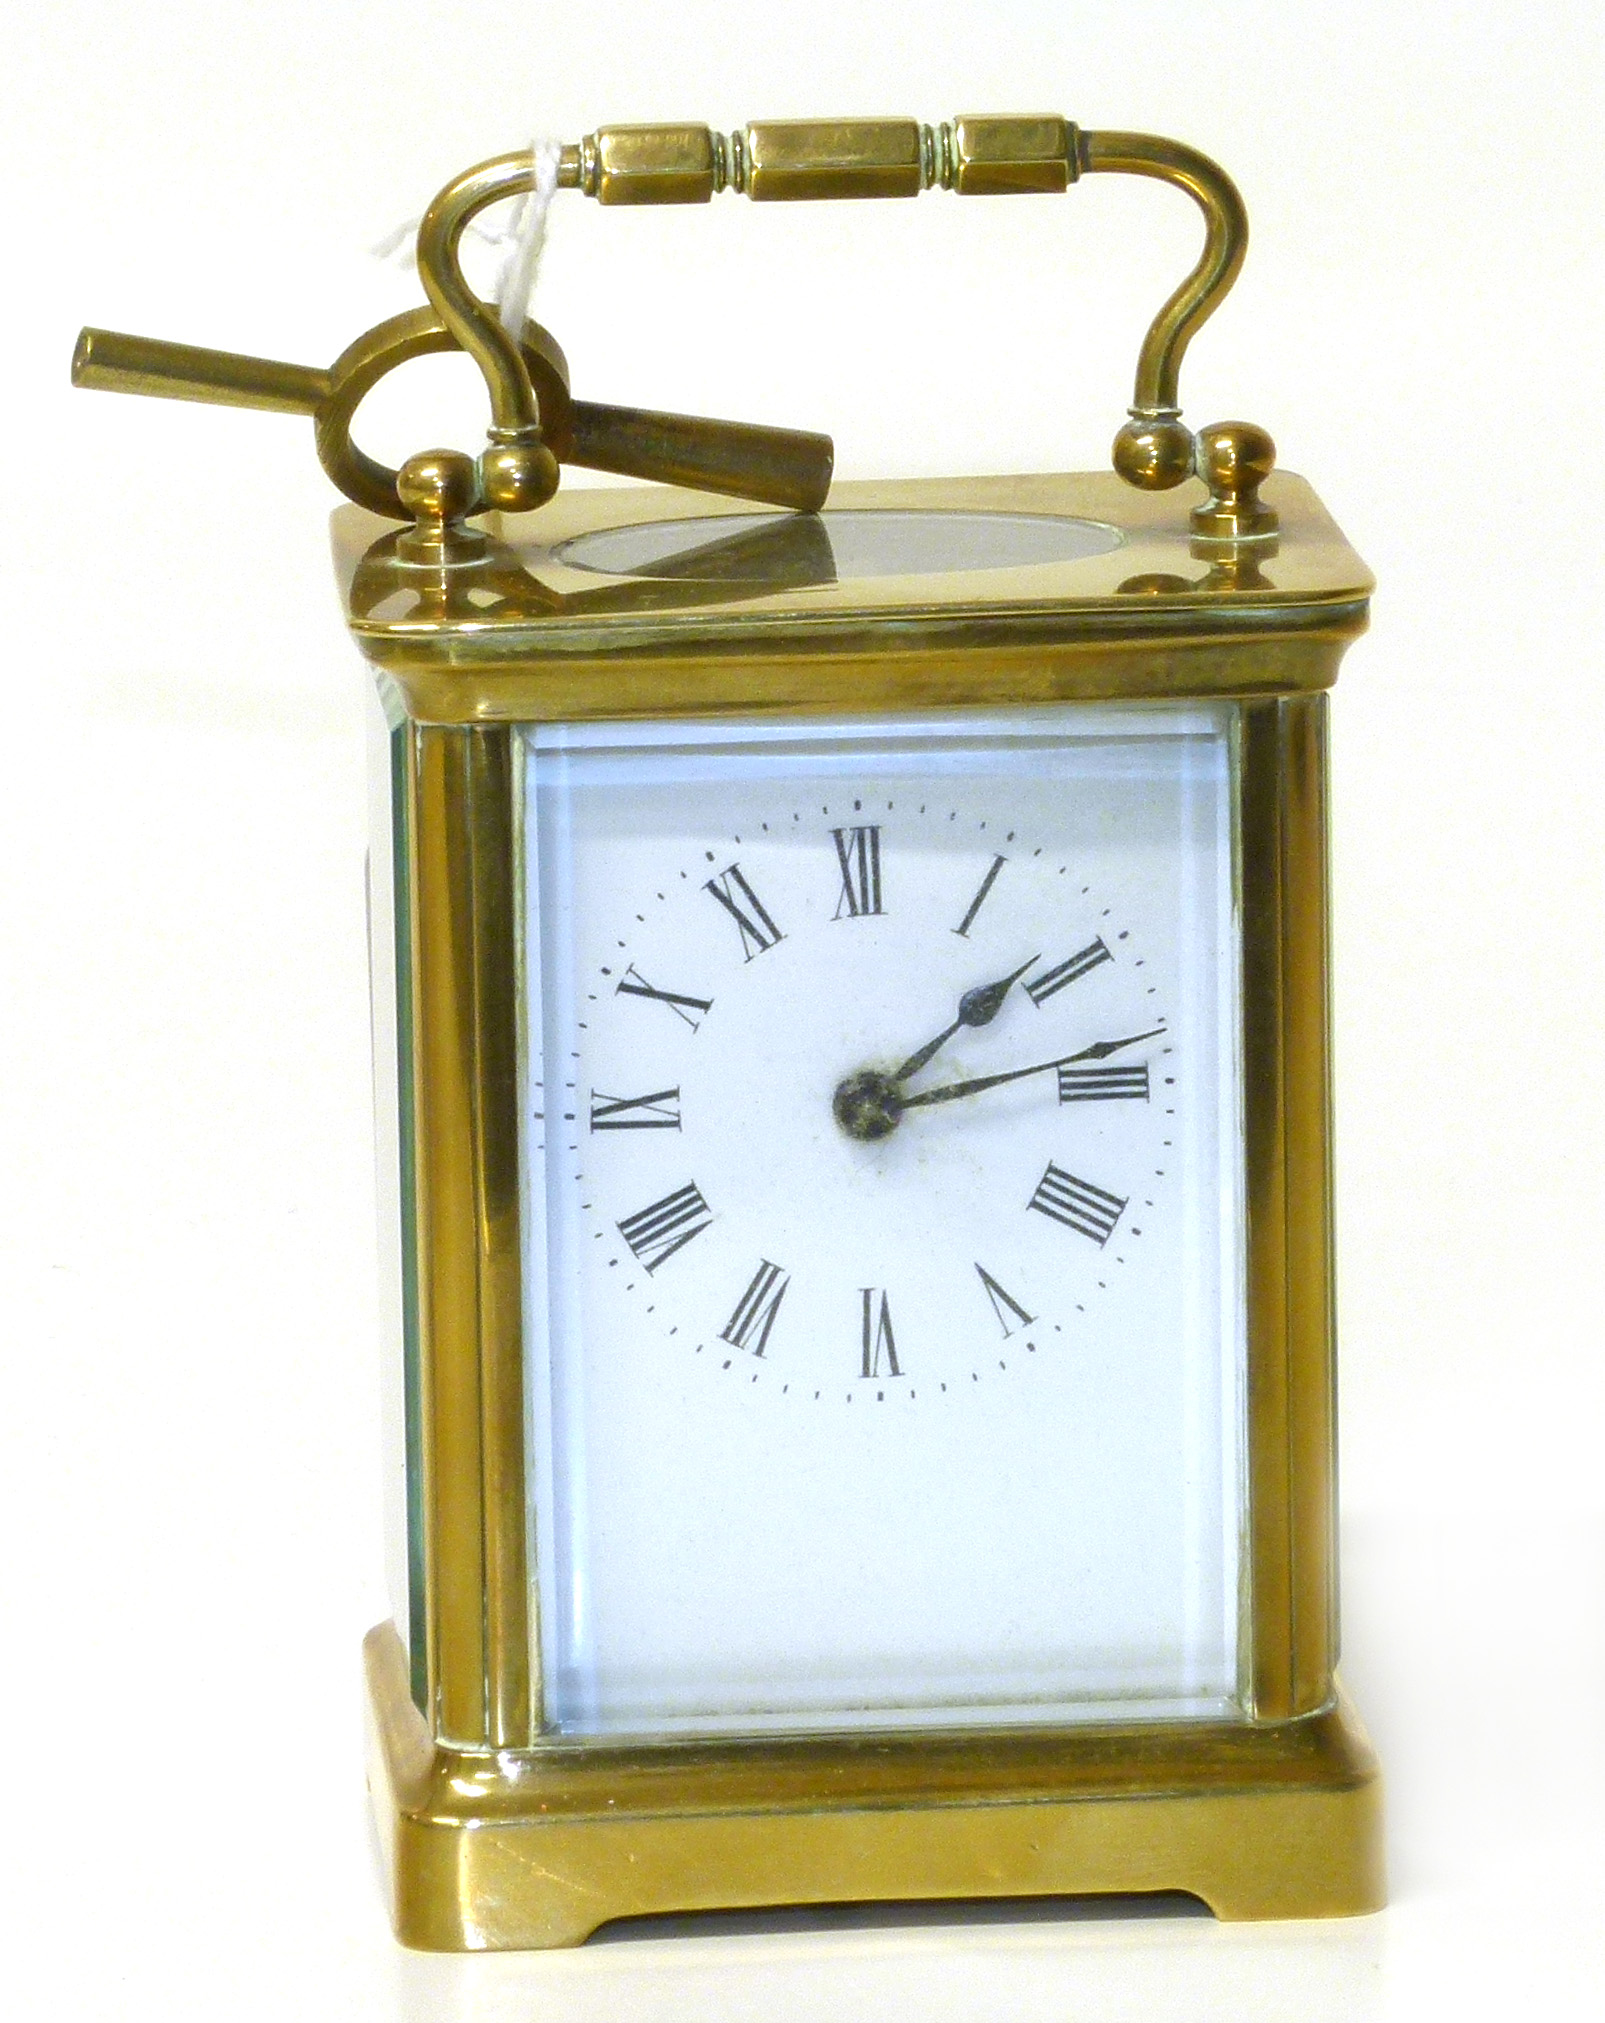 Lot 82 - Early 20th century brass carriage clock with enamel face and Roman numerals complete with winder